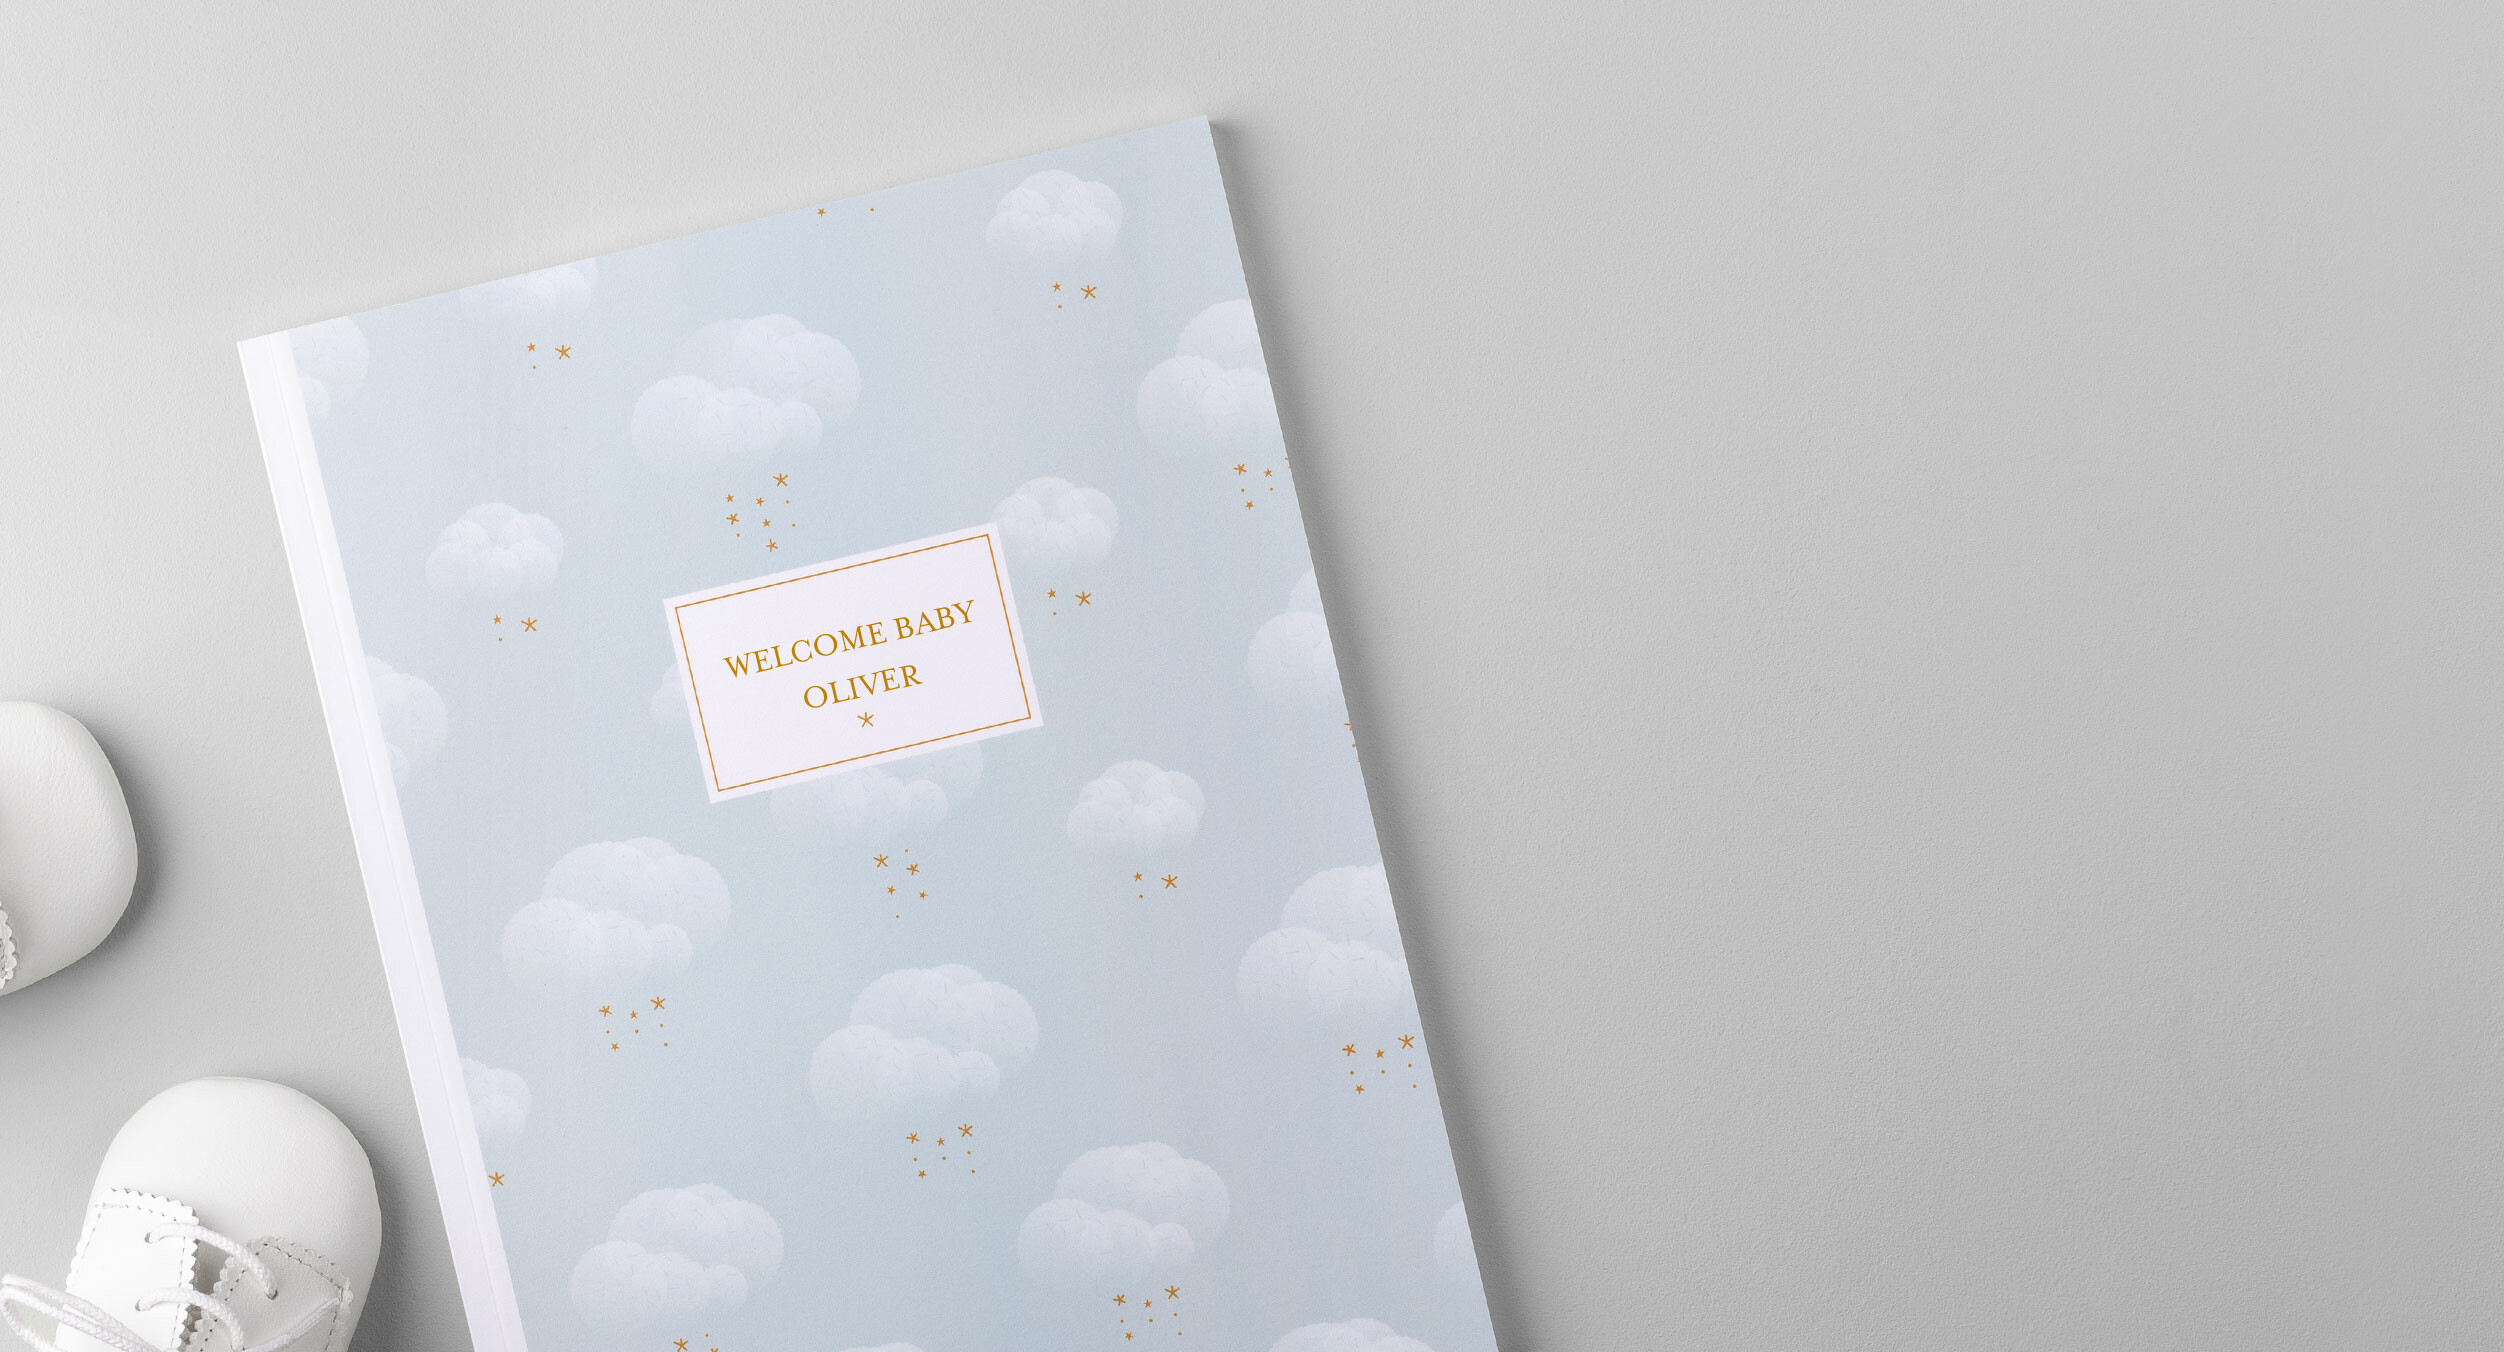 Christening Photo Albums